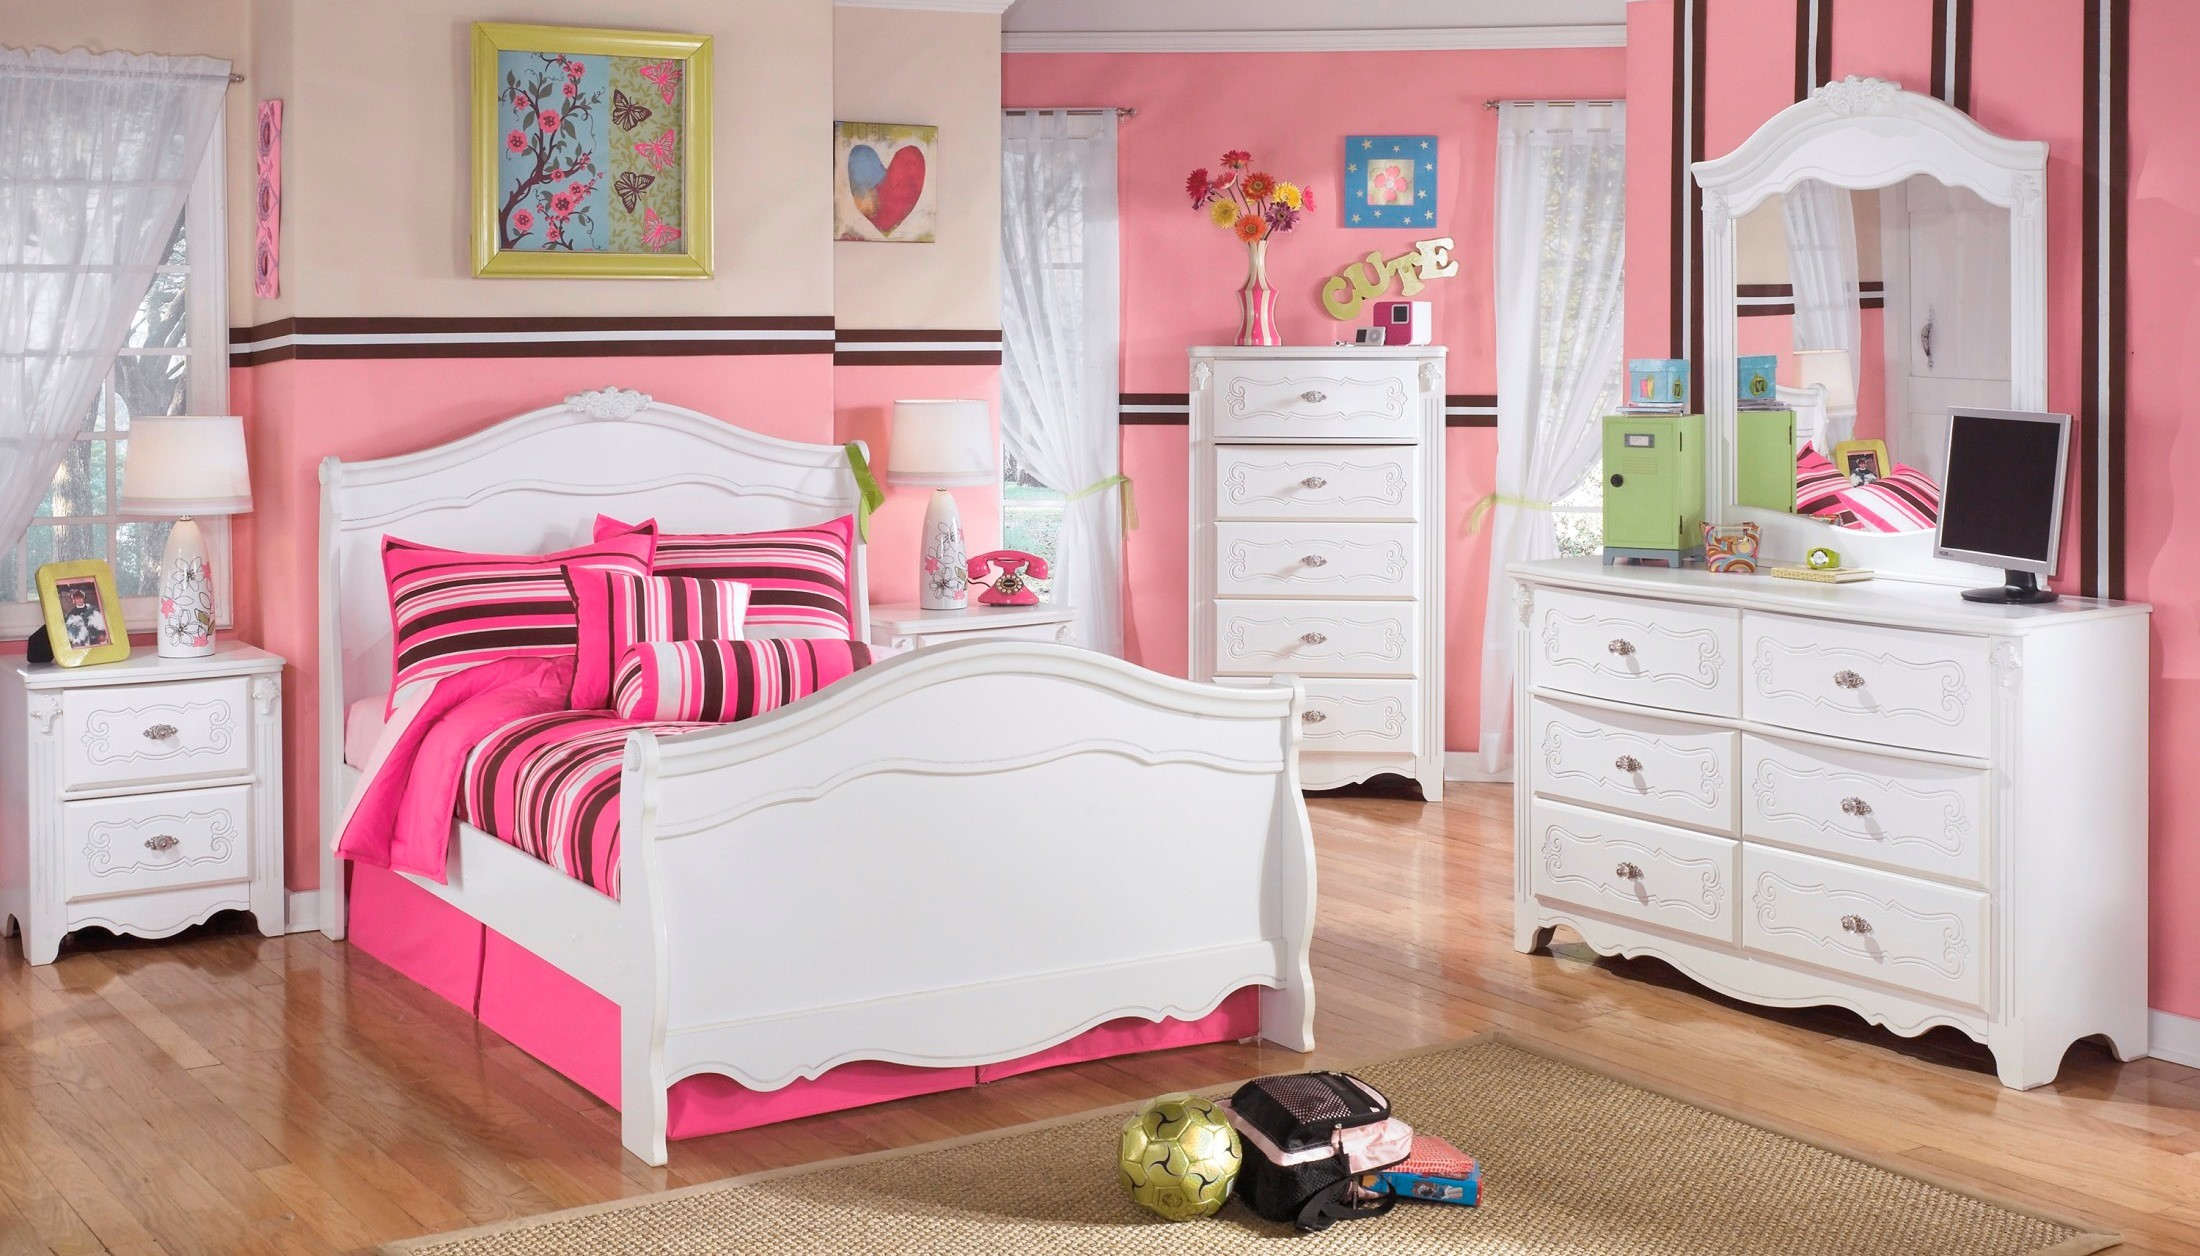 Signature Design by Ashley Exquisite Youth Sleigh Bedroom